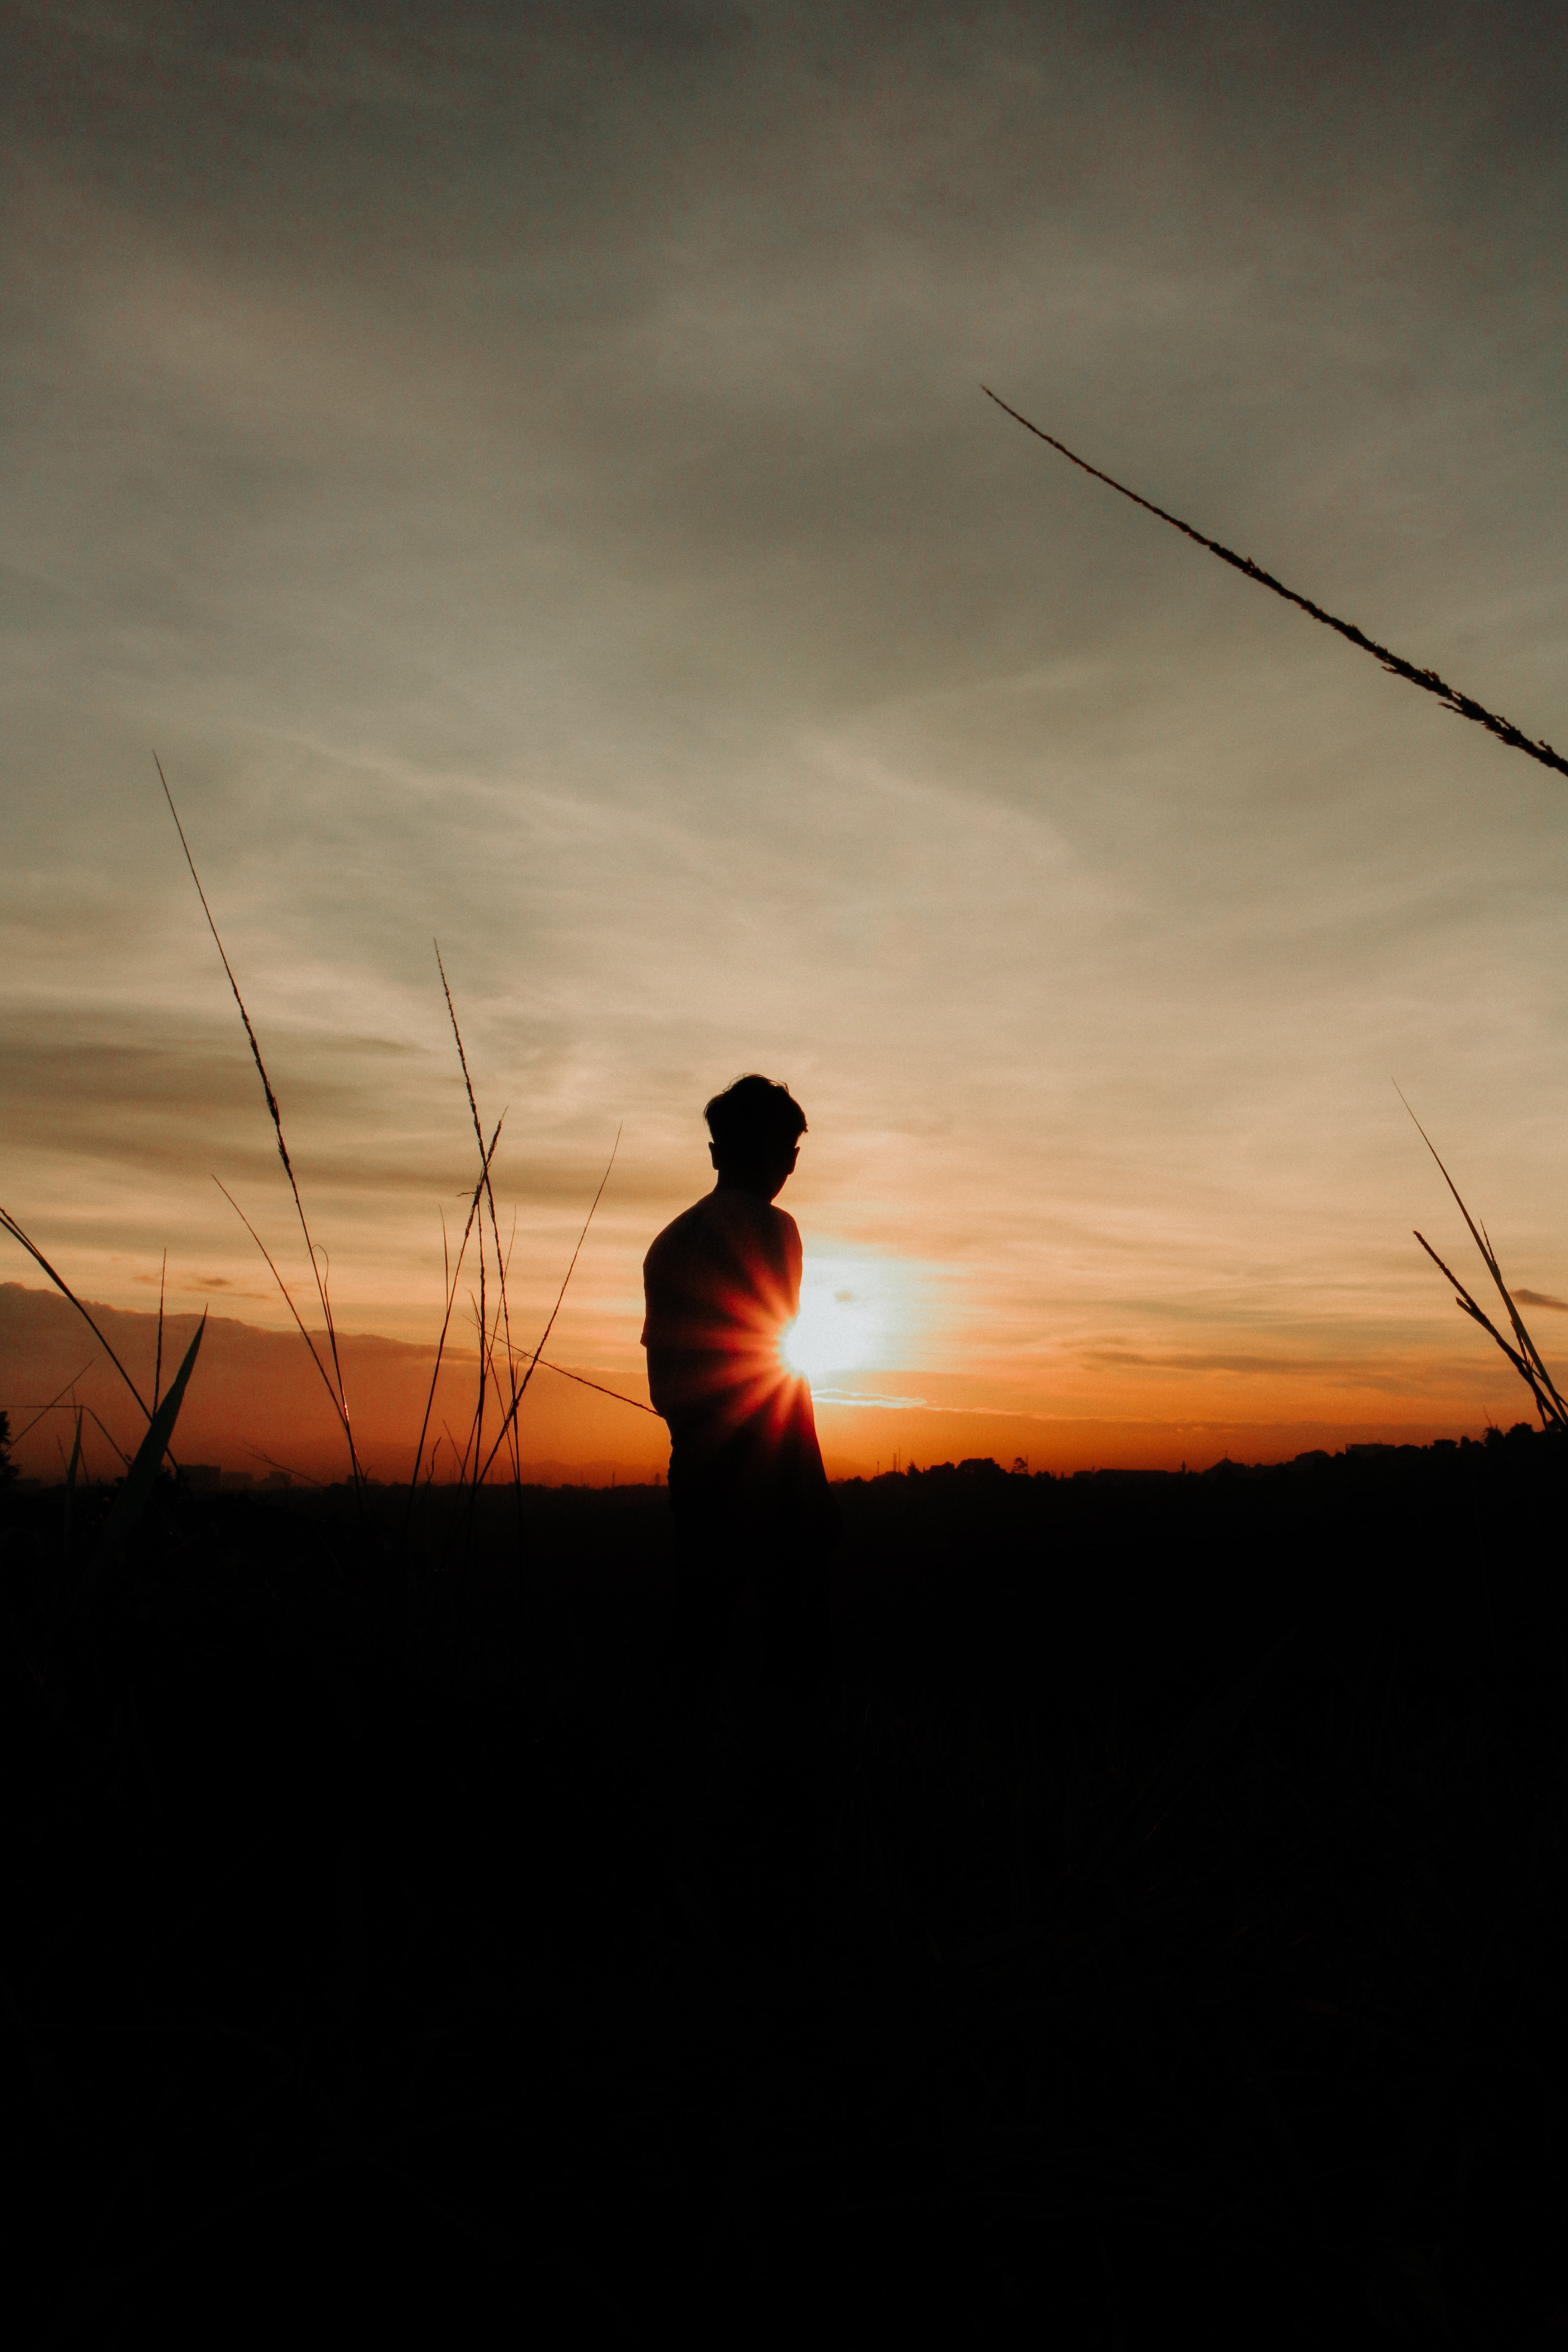 silhouette of person near grass at golden hour